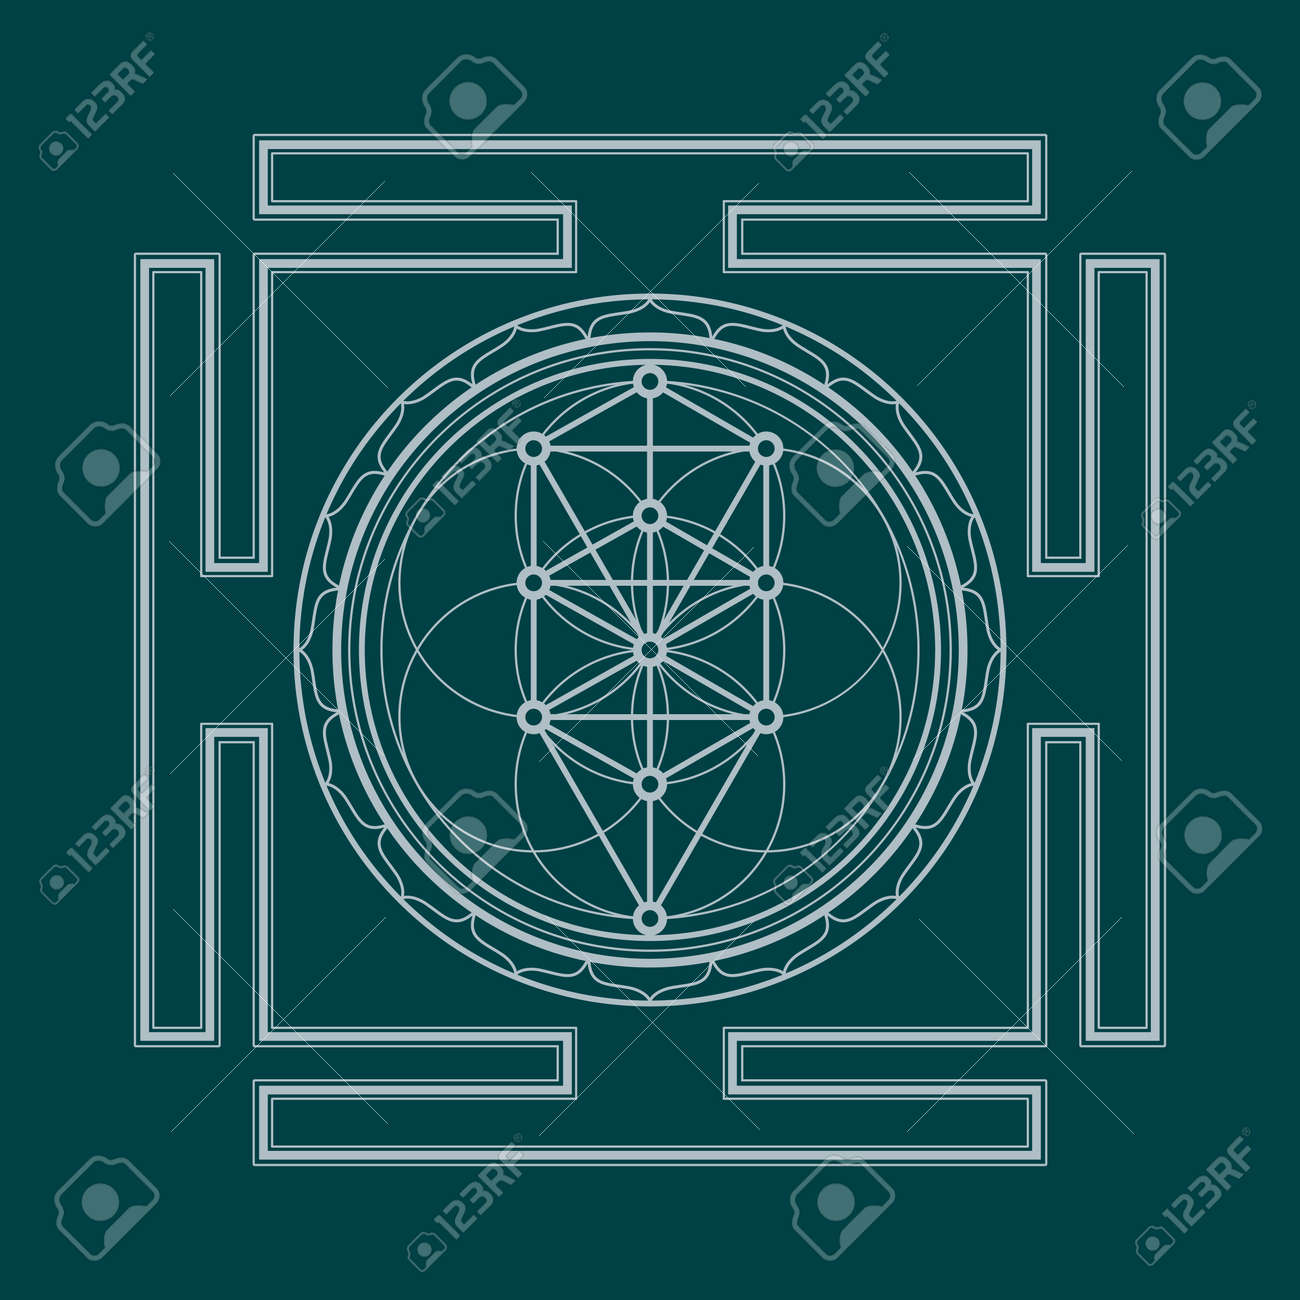 hight resolution of vector vector silver outline tree of life yantra illustration sacred diagram isolated on dark background